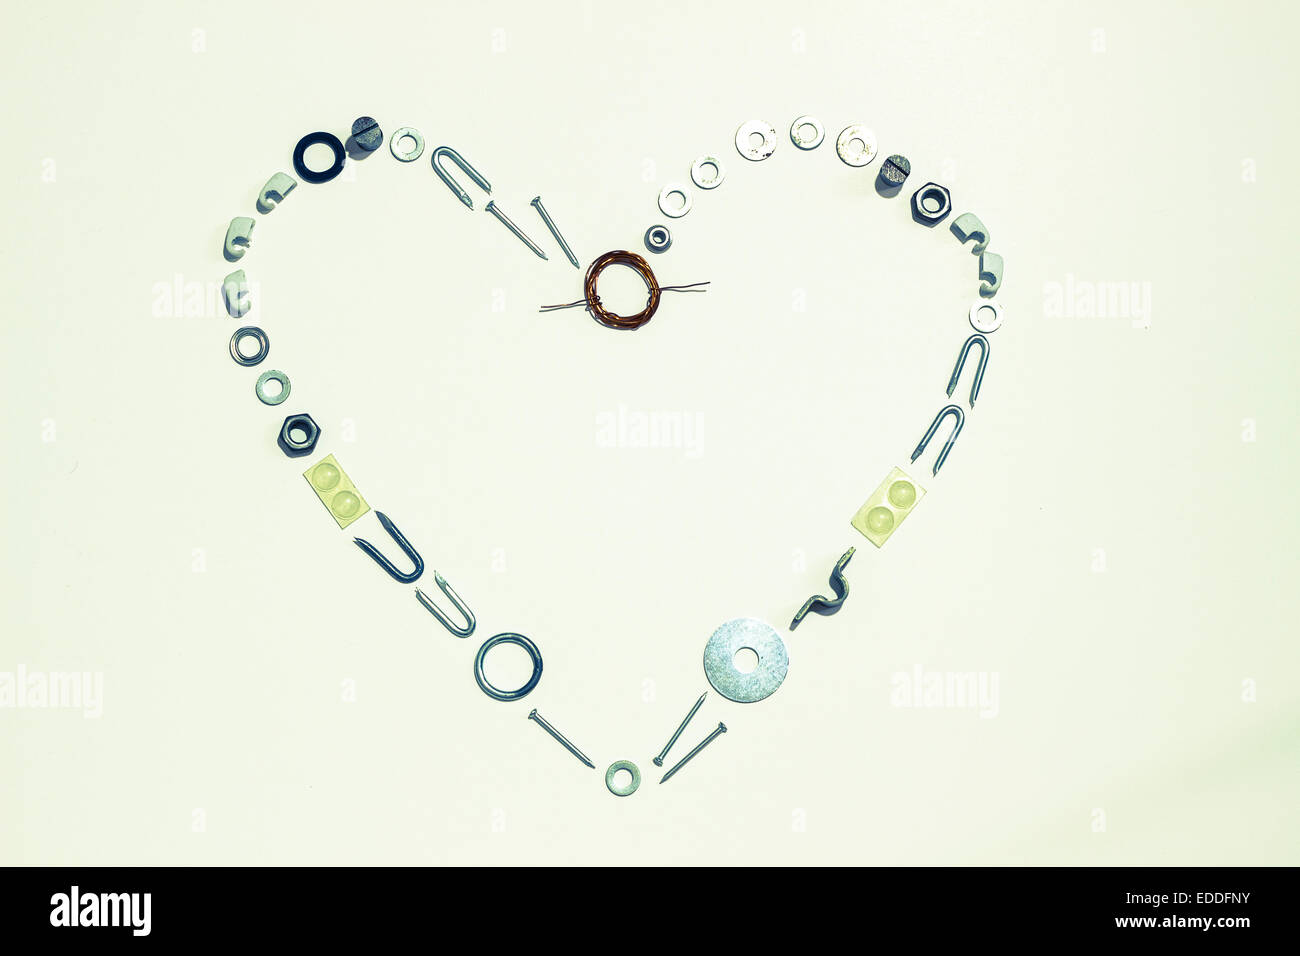 Heart shape formed with hardware - Stock Image